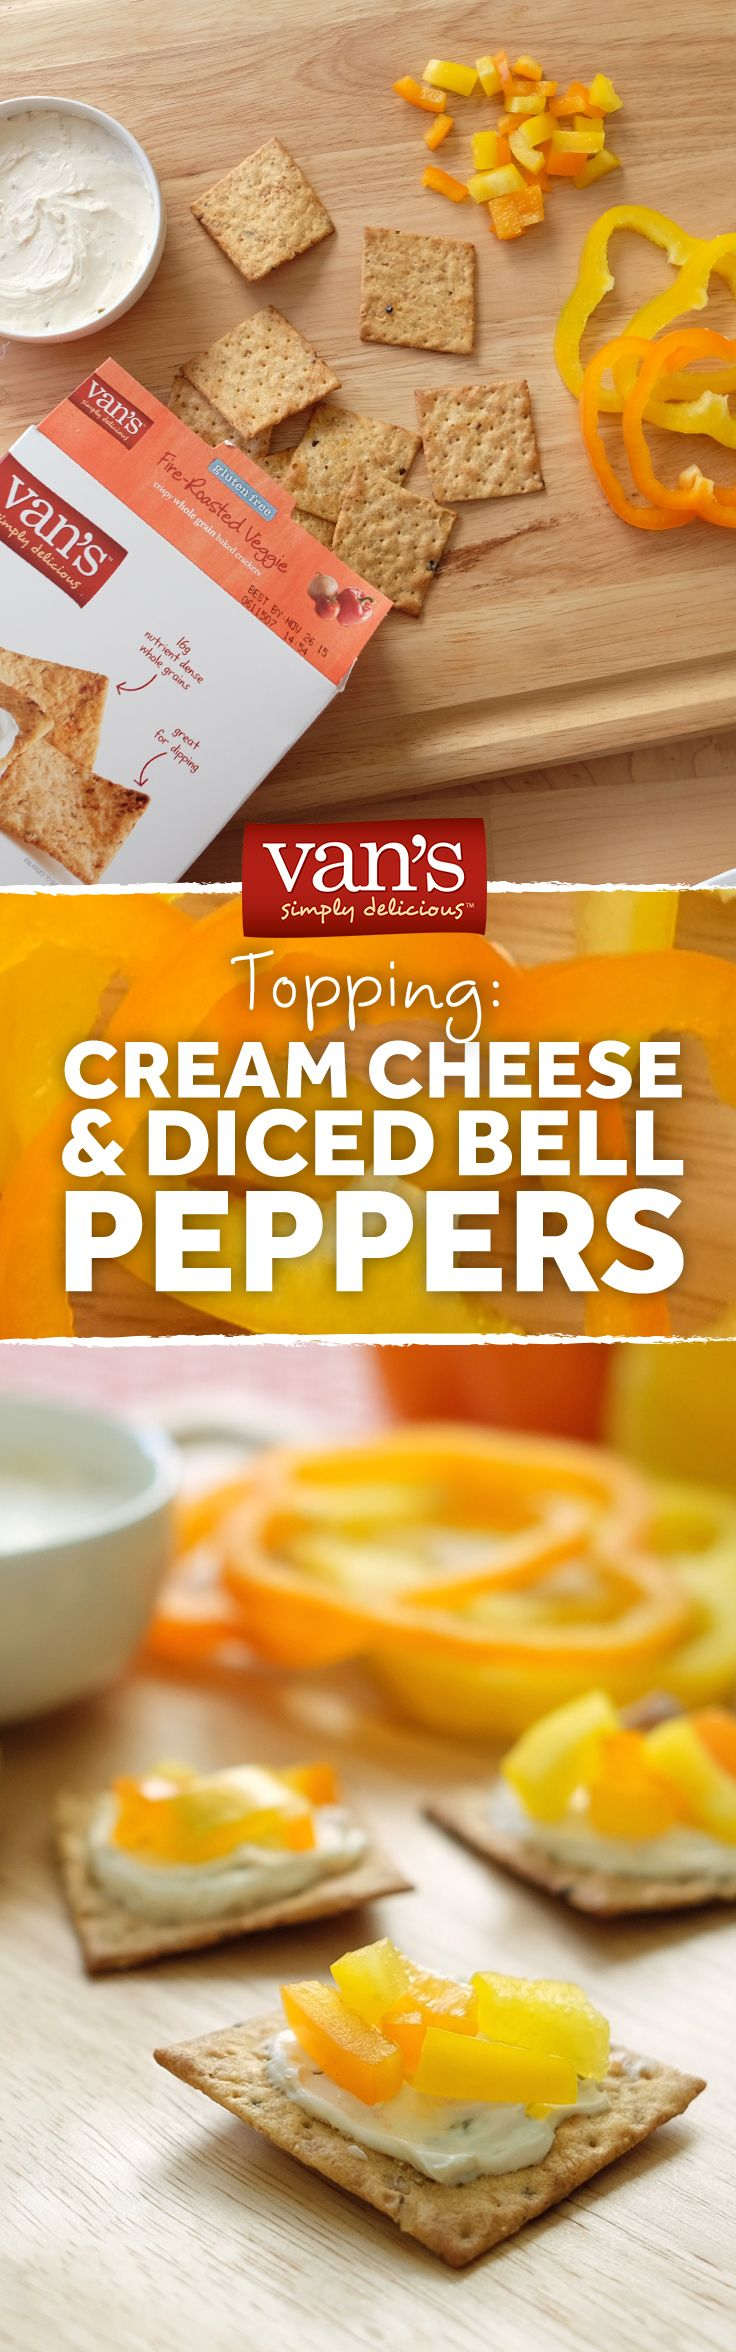 Pair our Fire Roasted Veggie crackers with garden veggie cream cheese and diced peppers for a topped and tasty snack!